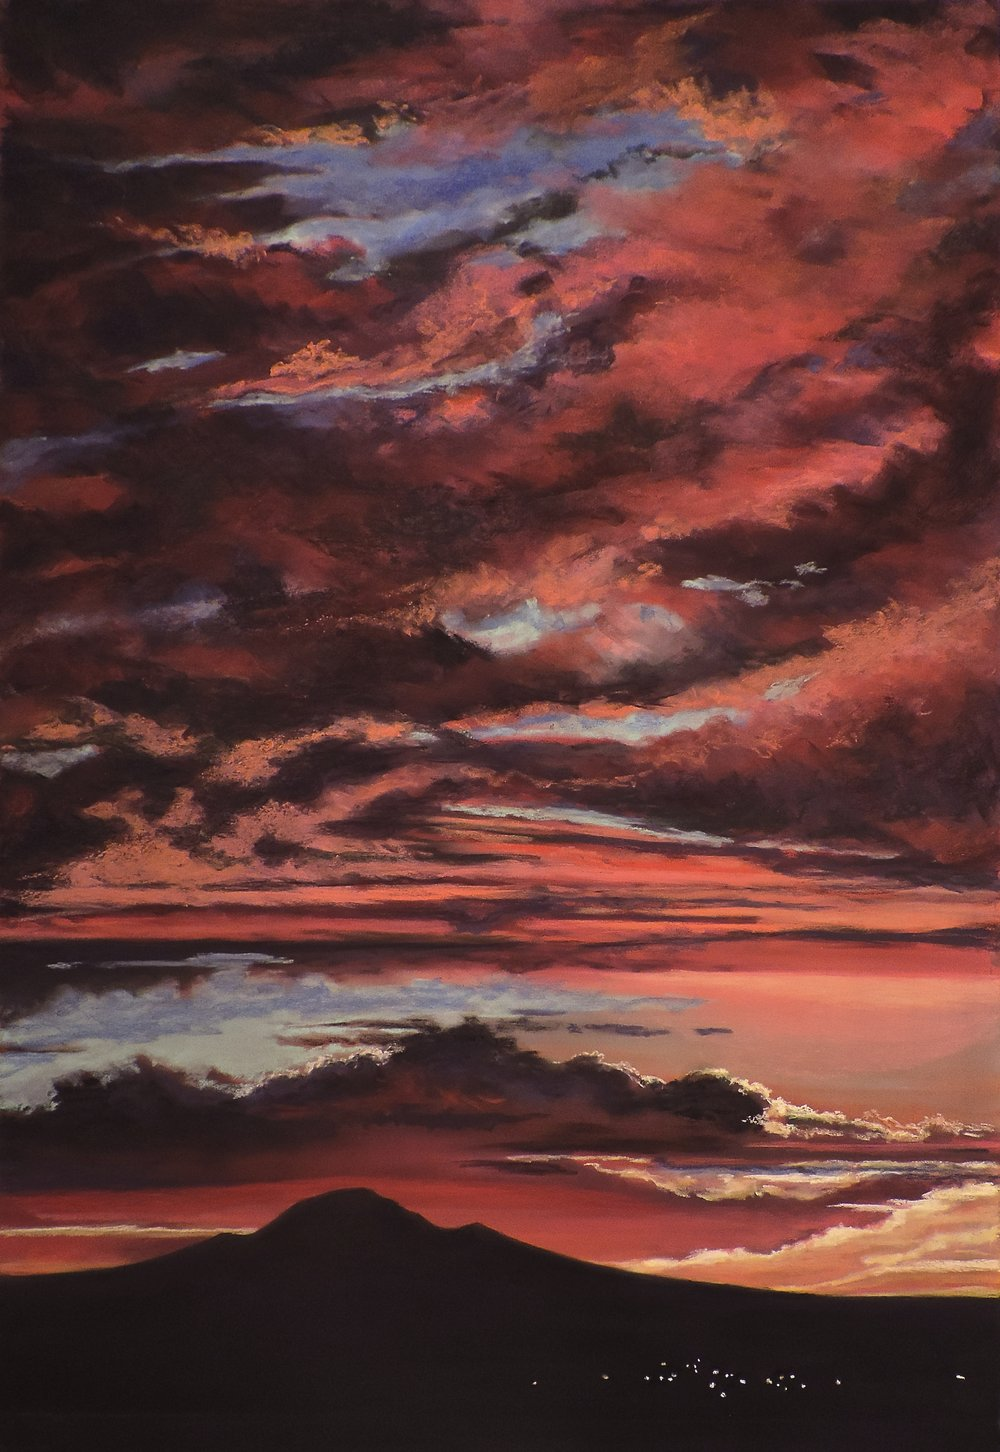 """Albuquerque Fire In the sky""  Albuquerque, NM  Pan Pastel® and traditional pastel  24 x 36  Cheri GInsburg ©"